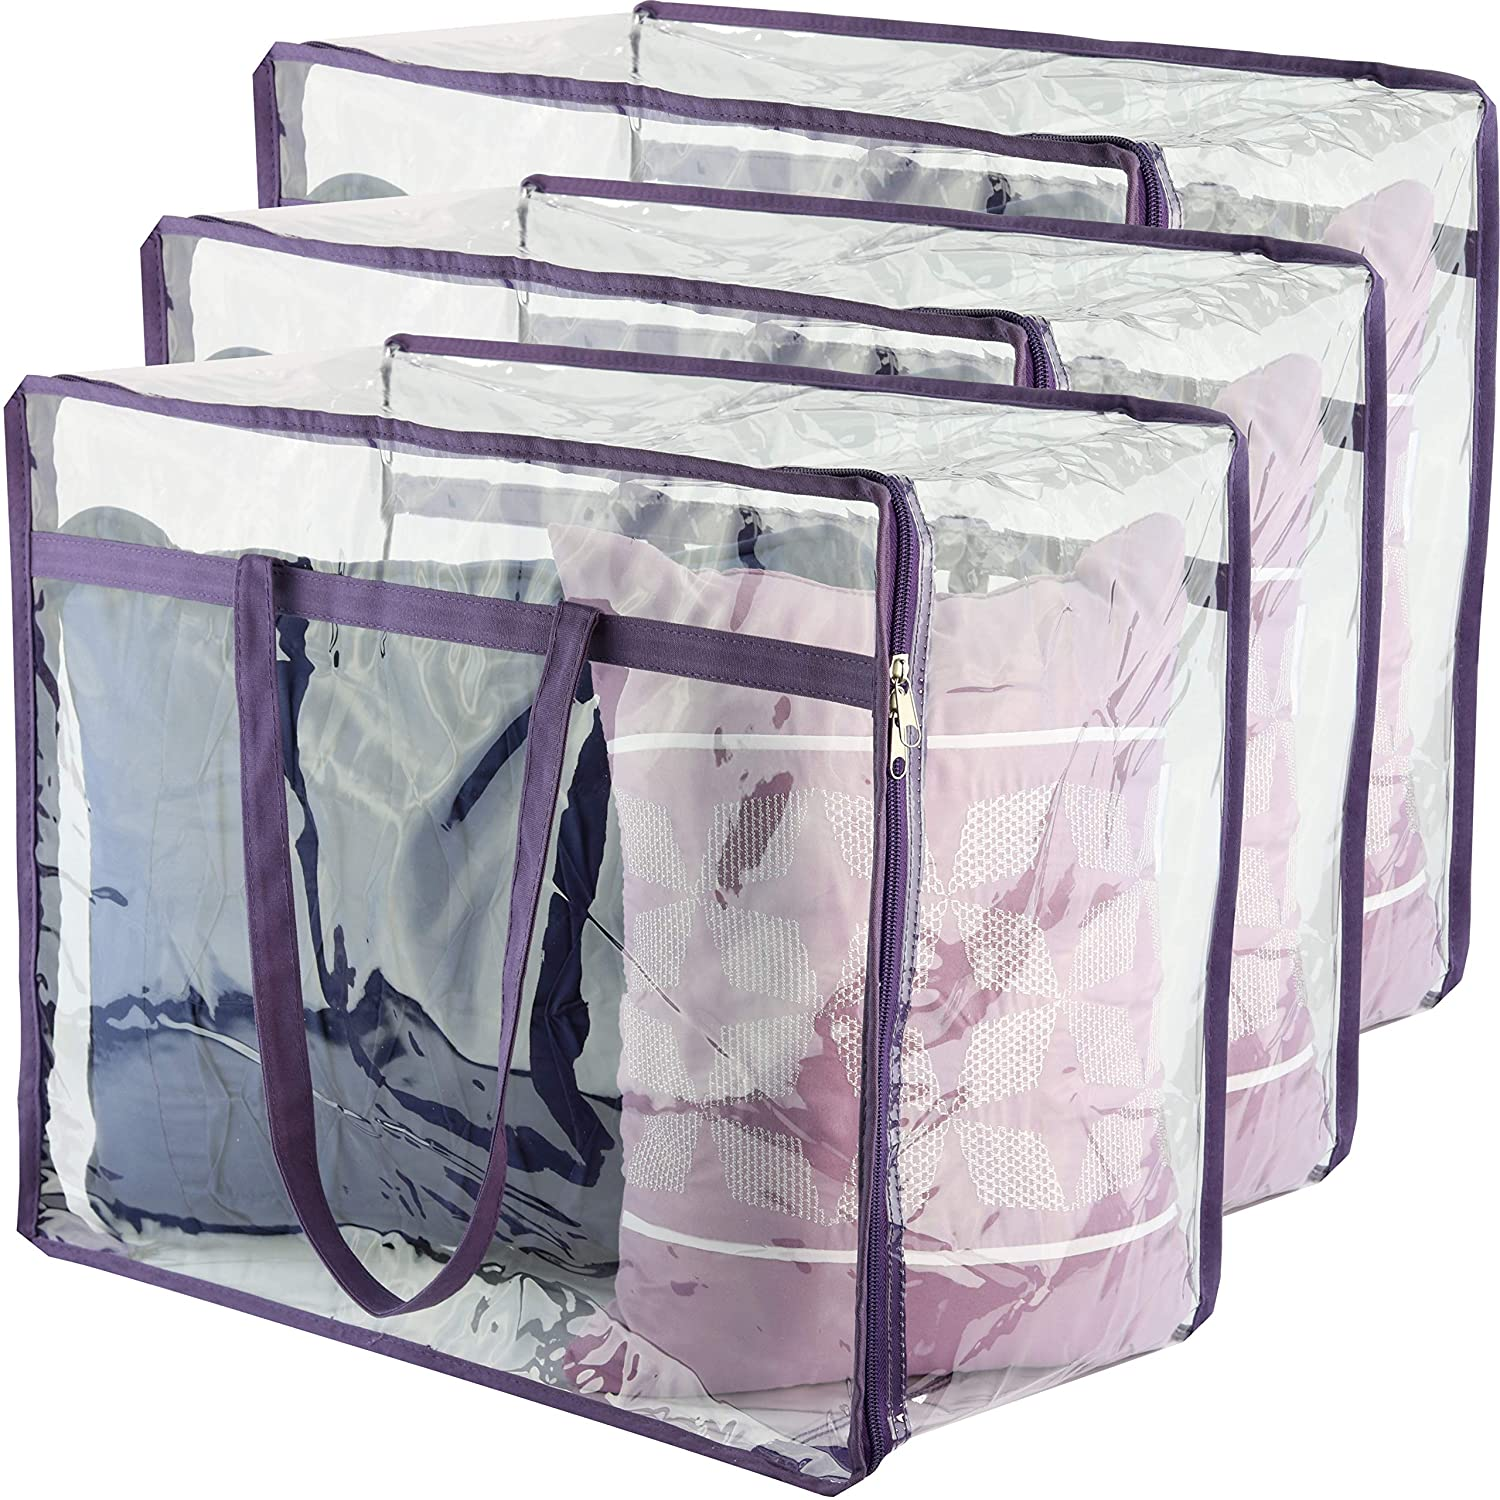 Linen 5 Pack Extra Large Clear Storage Bag Moving Totes for Clothing  Bedding